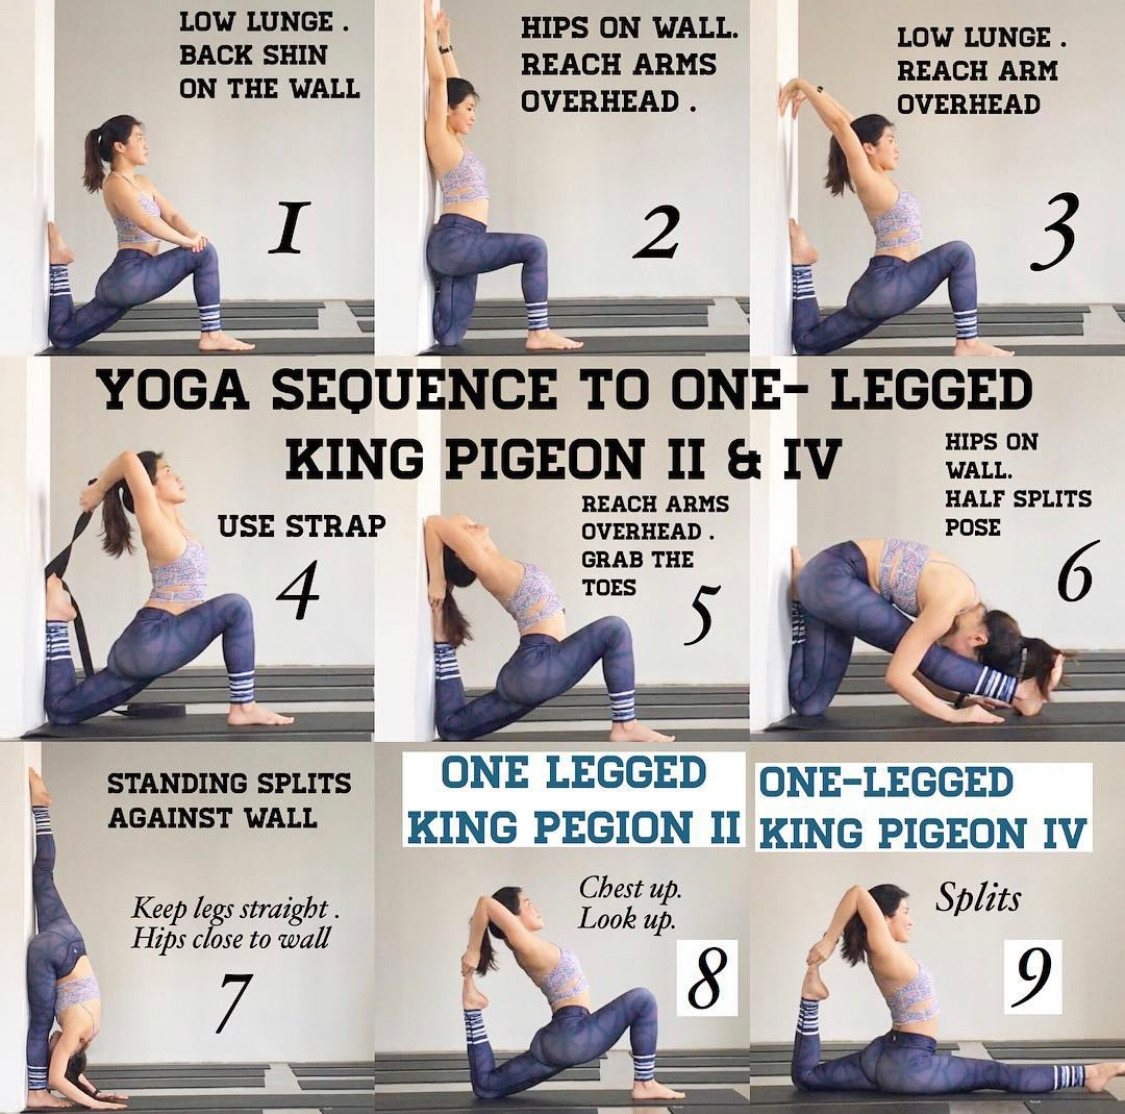 Yoga Sequence For King Pigeon